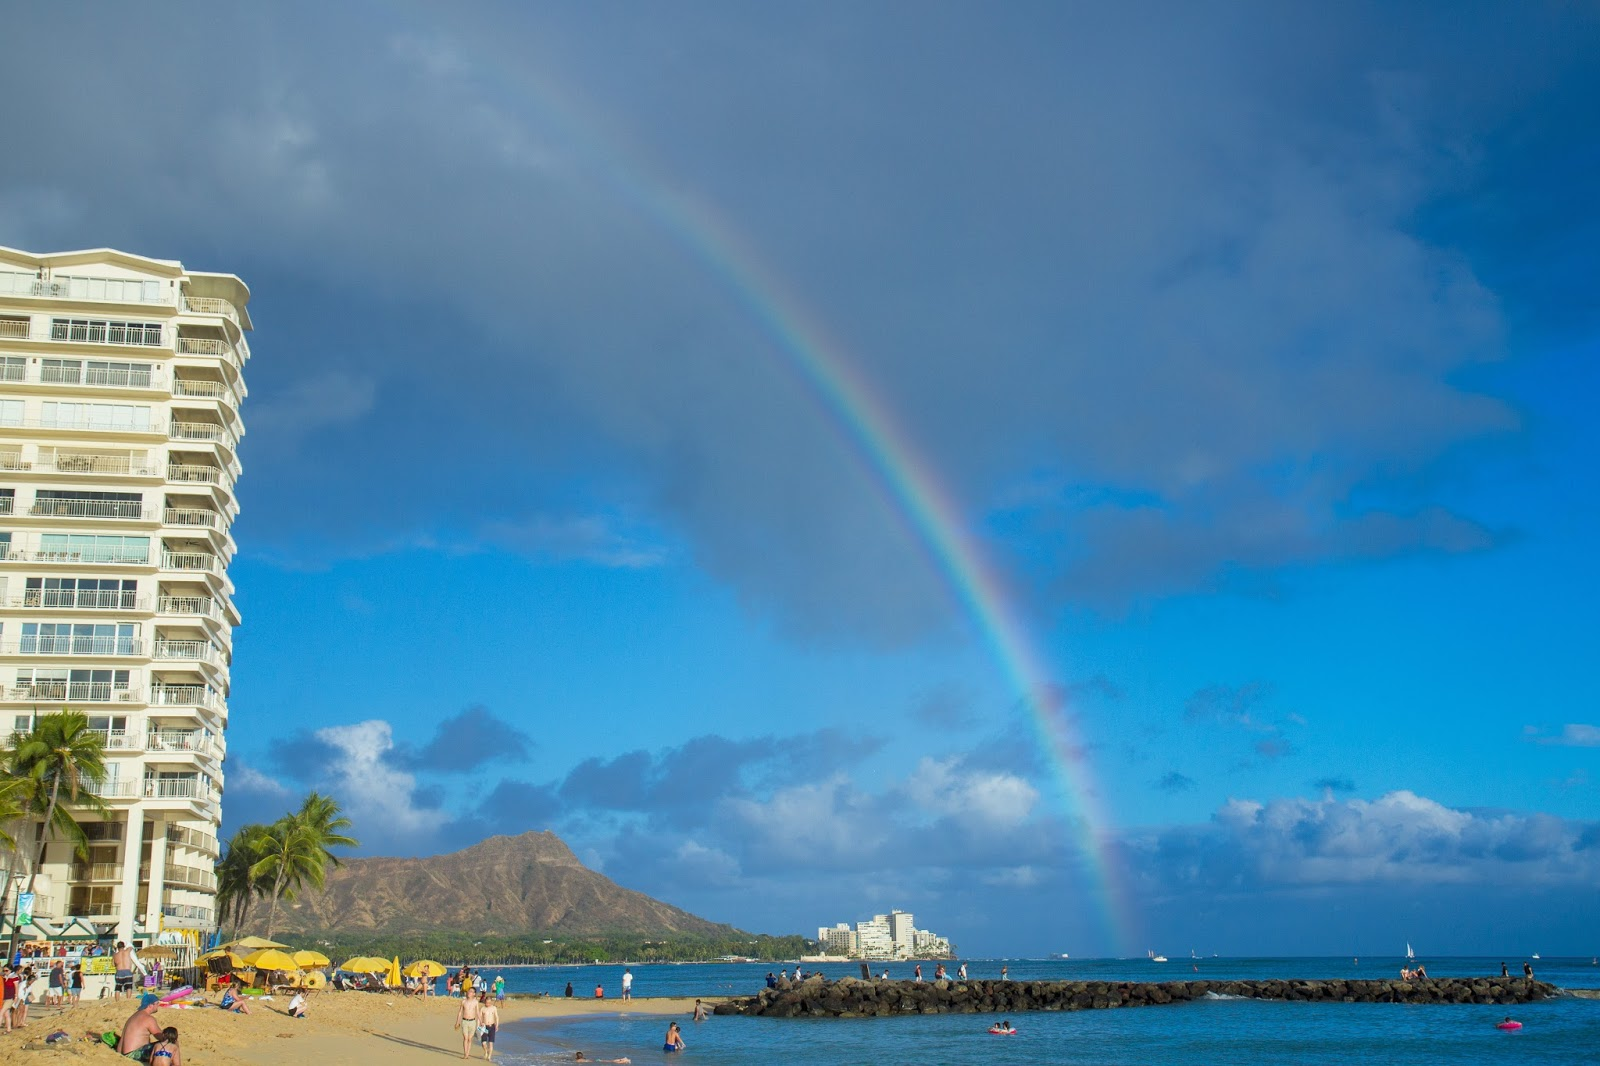 rainbow in Waikiki, Hawaii